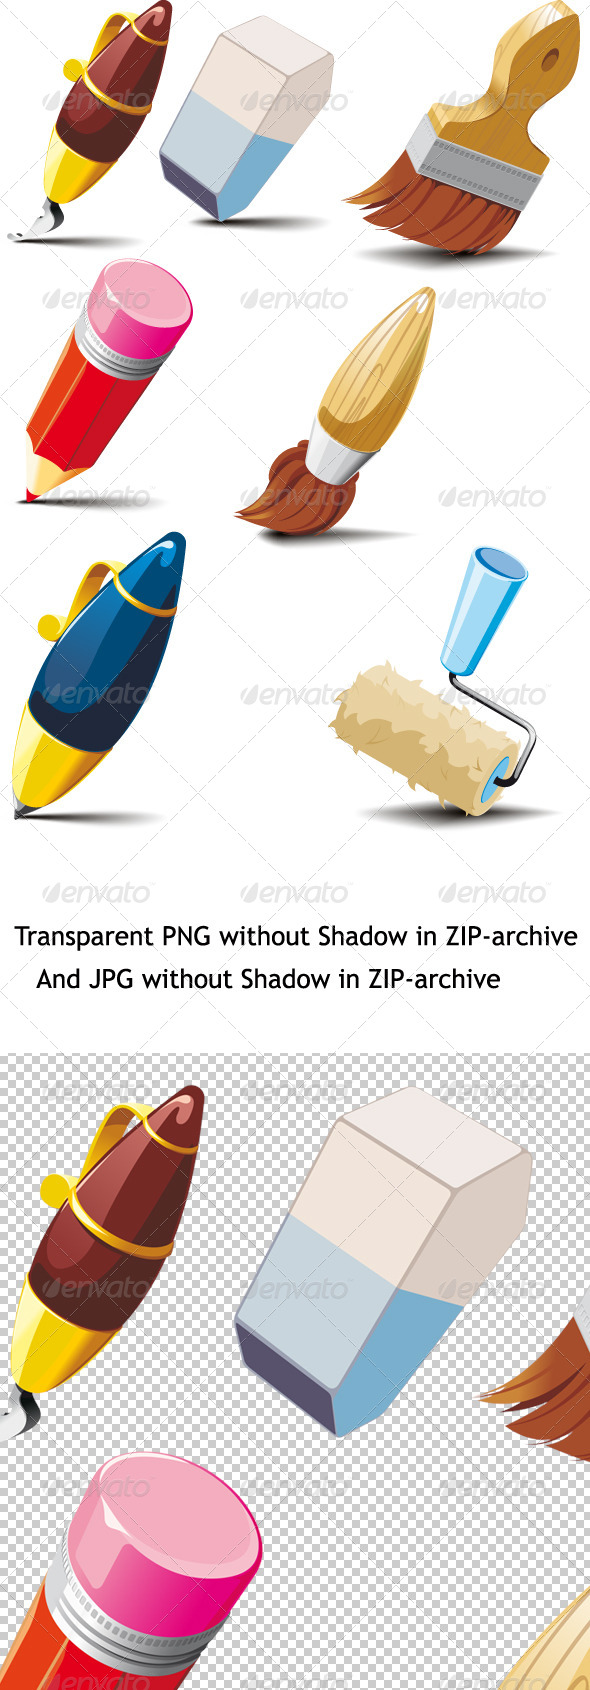 Big Set of Stationery for Writing and Drawing - Man-made Objects Objects